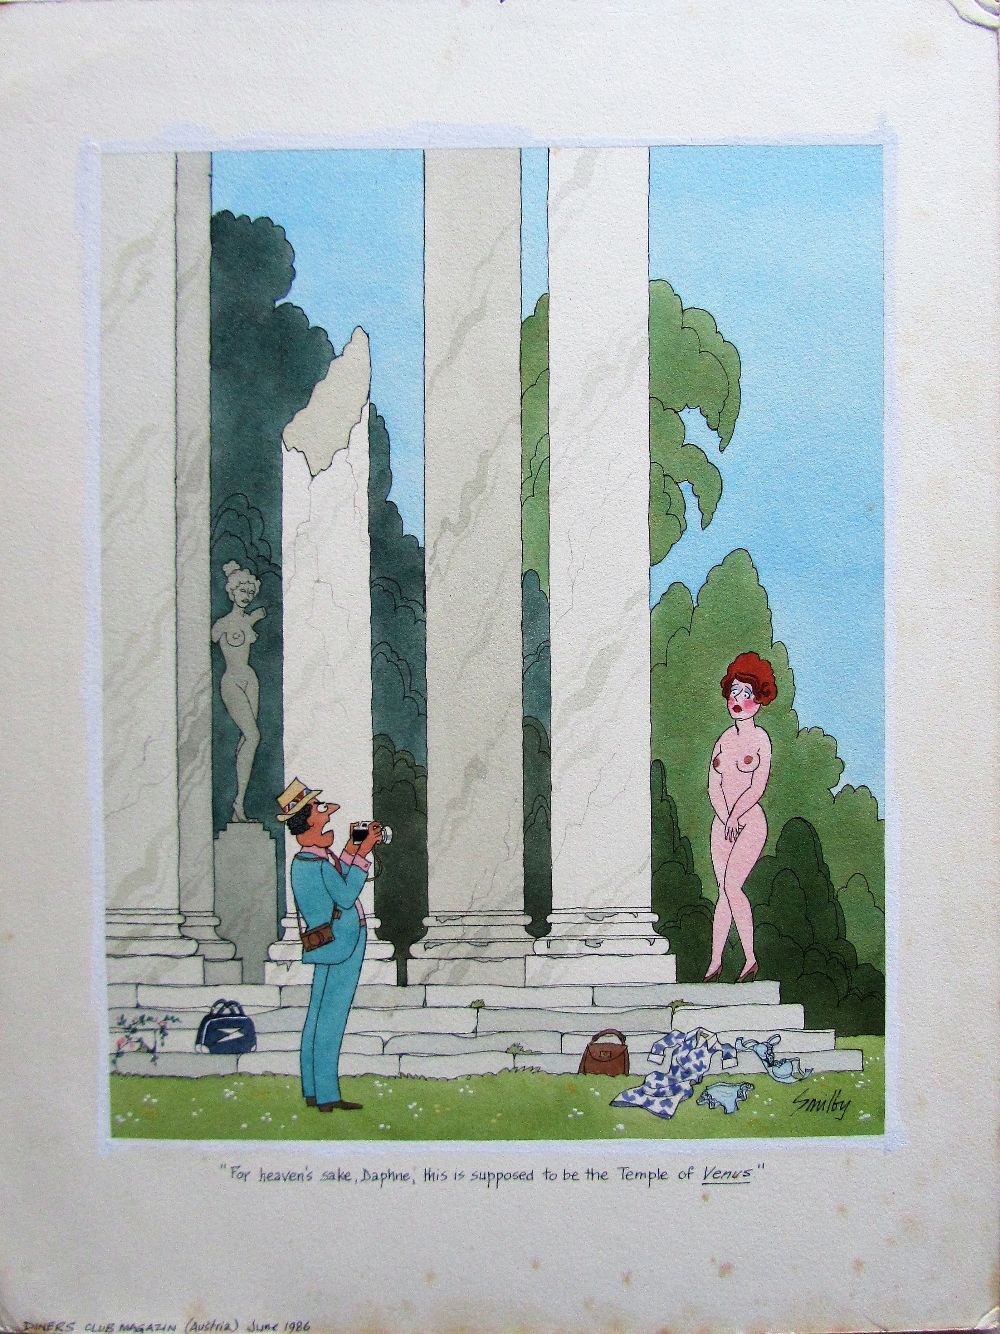 Lot 42 - Smilby, Francis Wilford-Smith For heaven's sake, Daphne, this is supposed to be the Temple of Venus